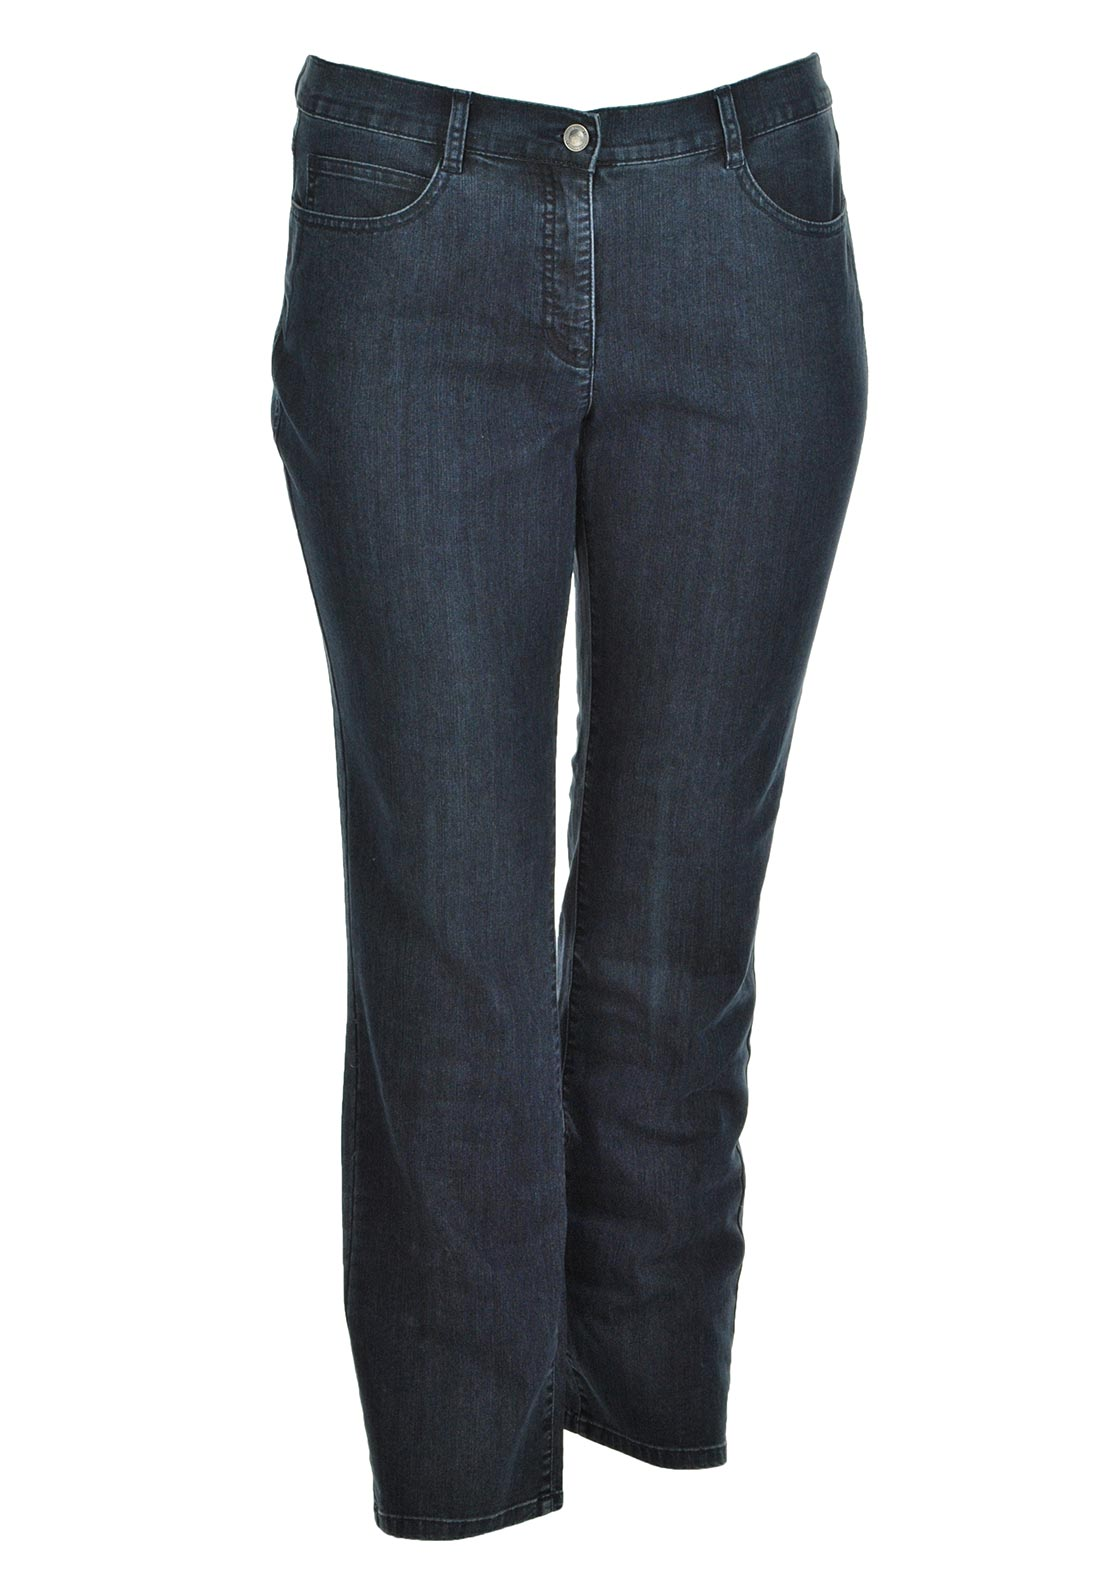 Lebek Fade Effect Straight Leg Jeans, Navy Denim